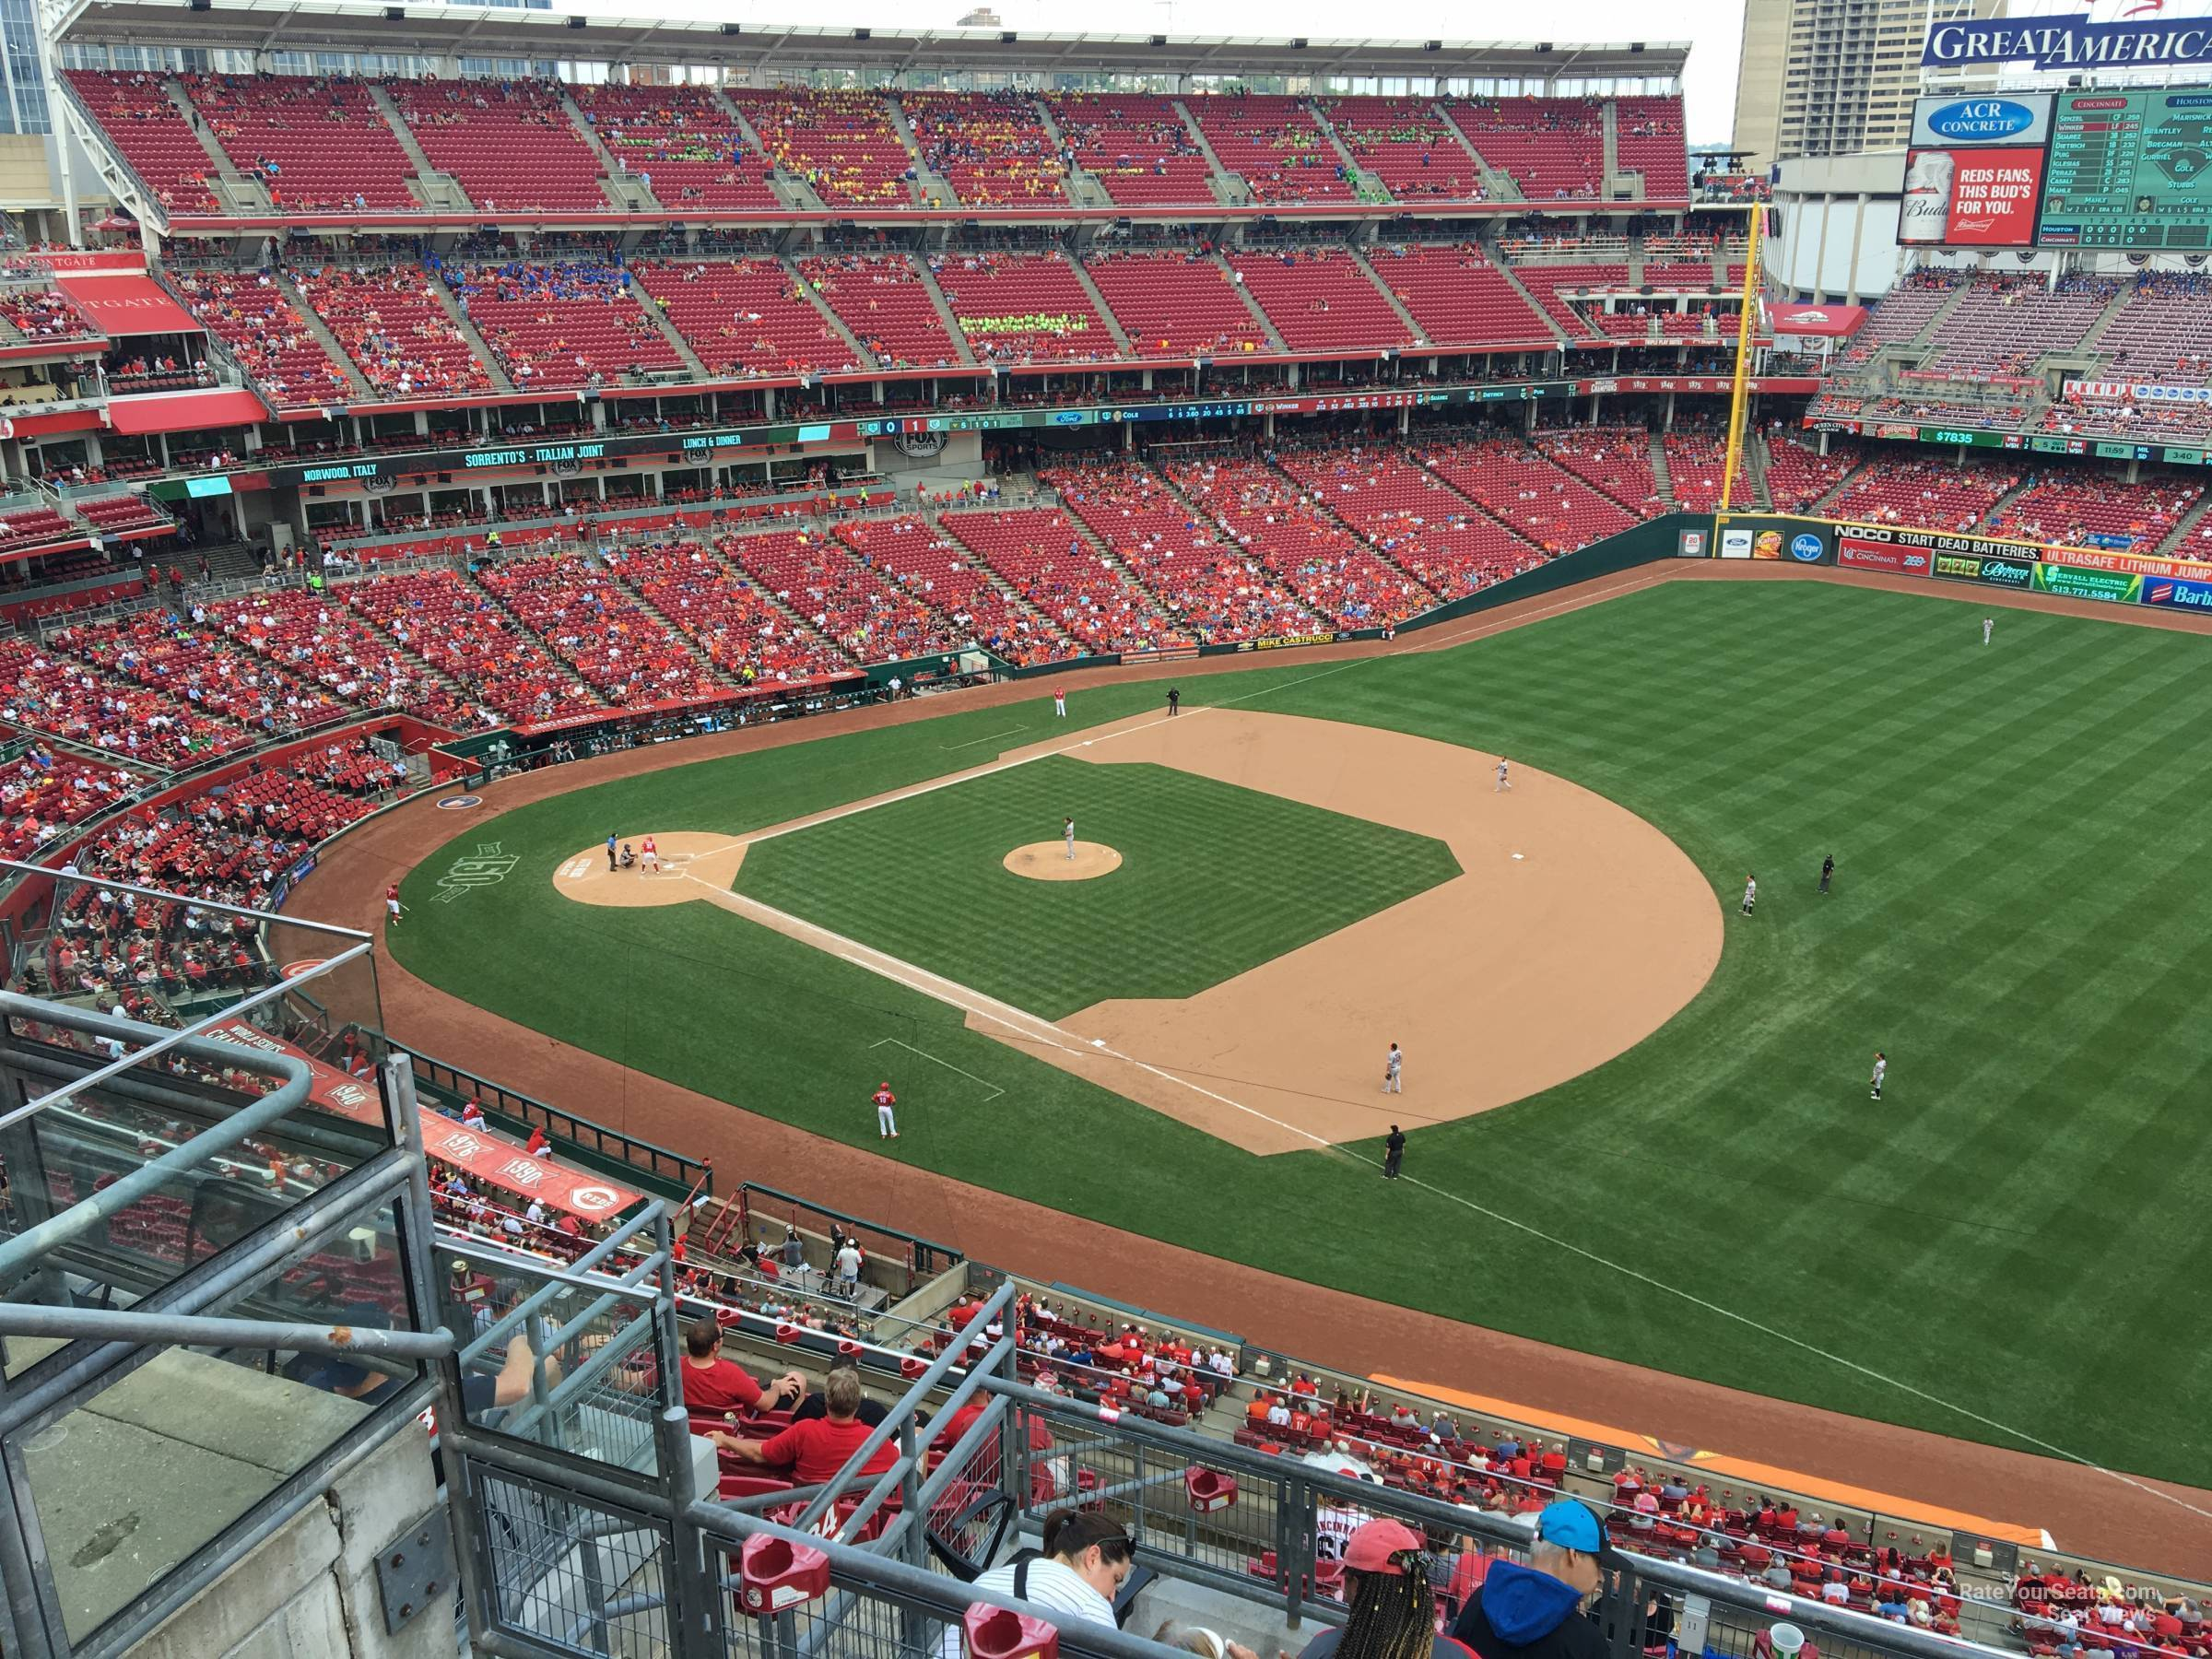 Section 534 seat view